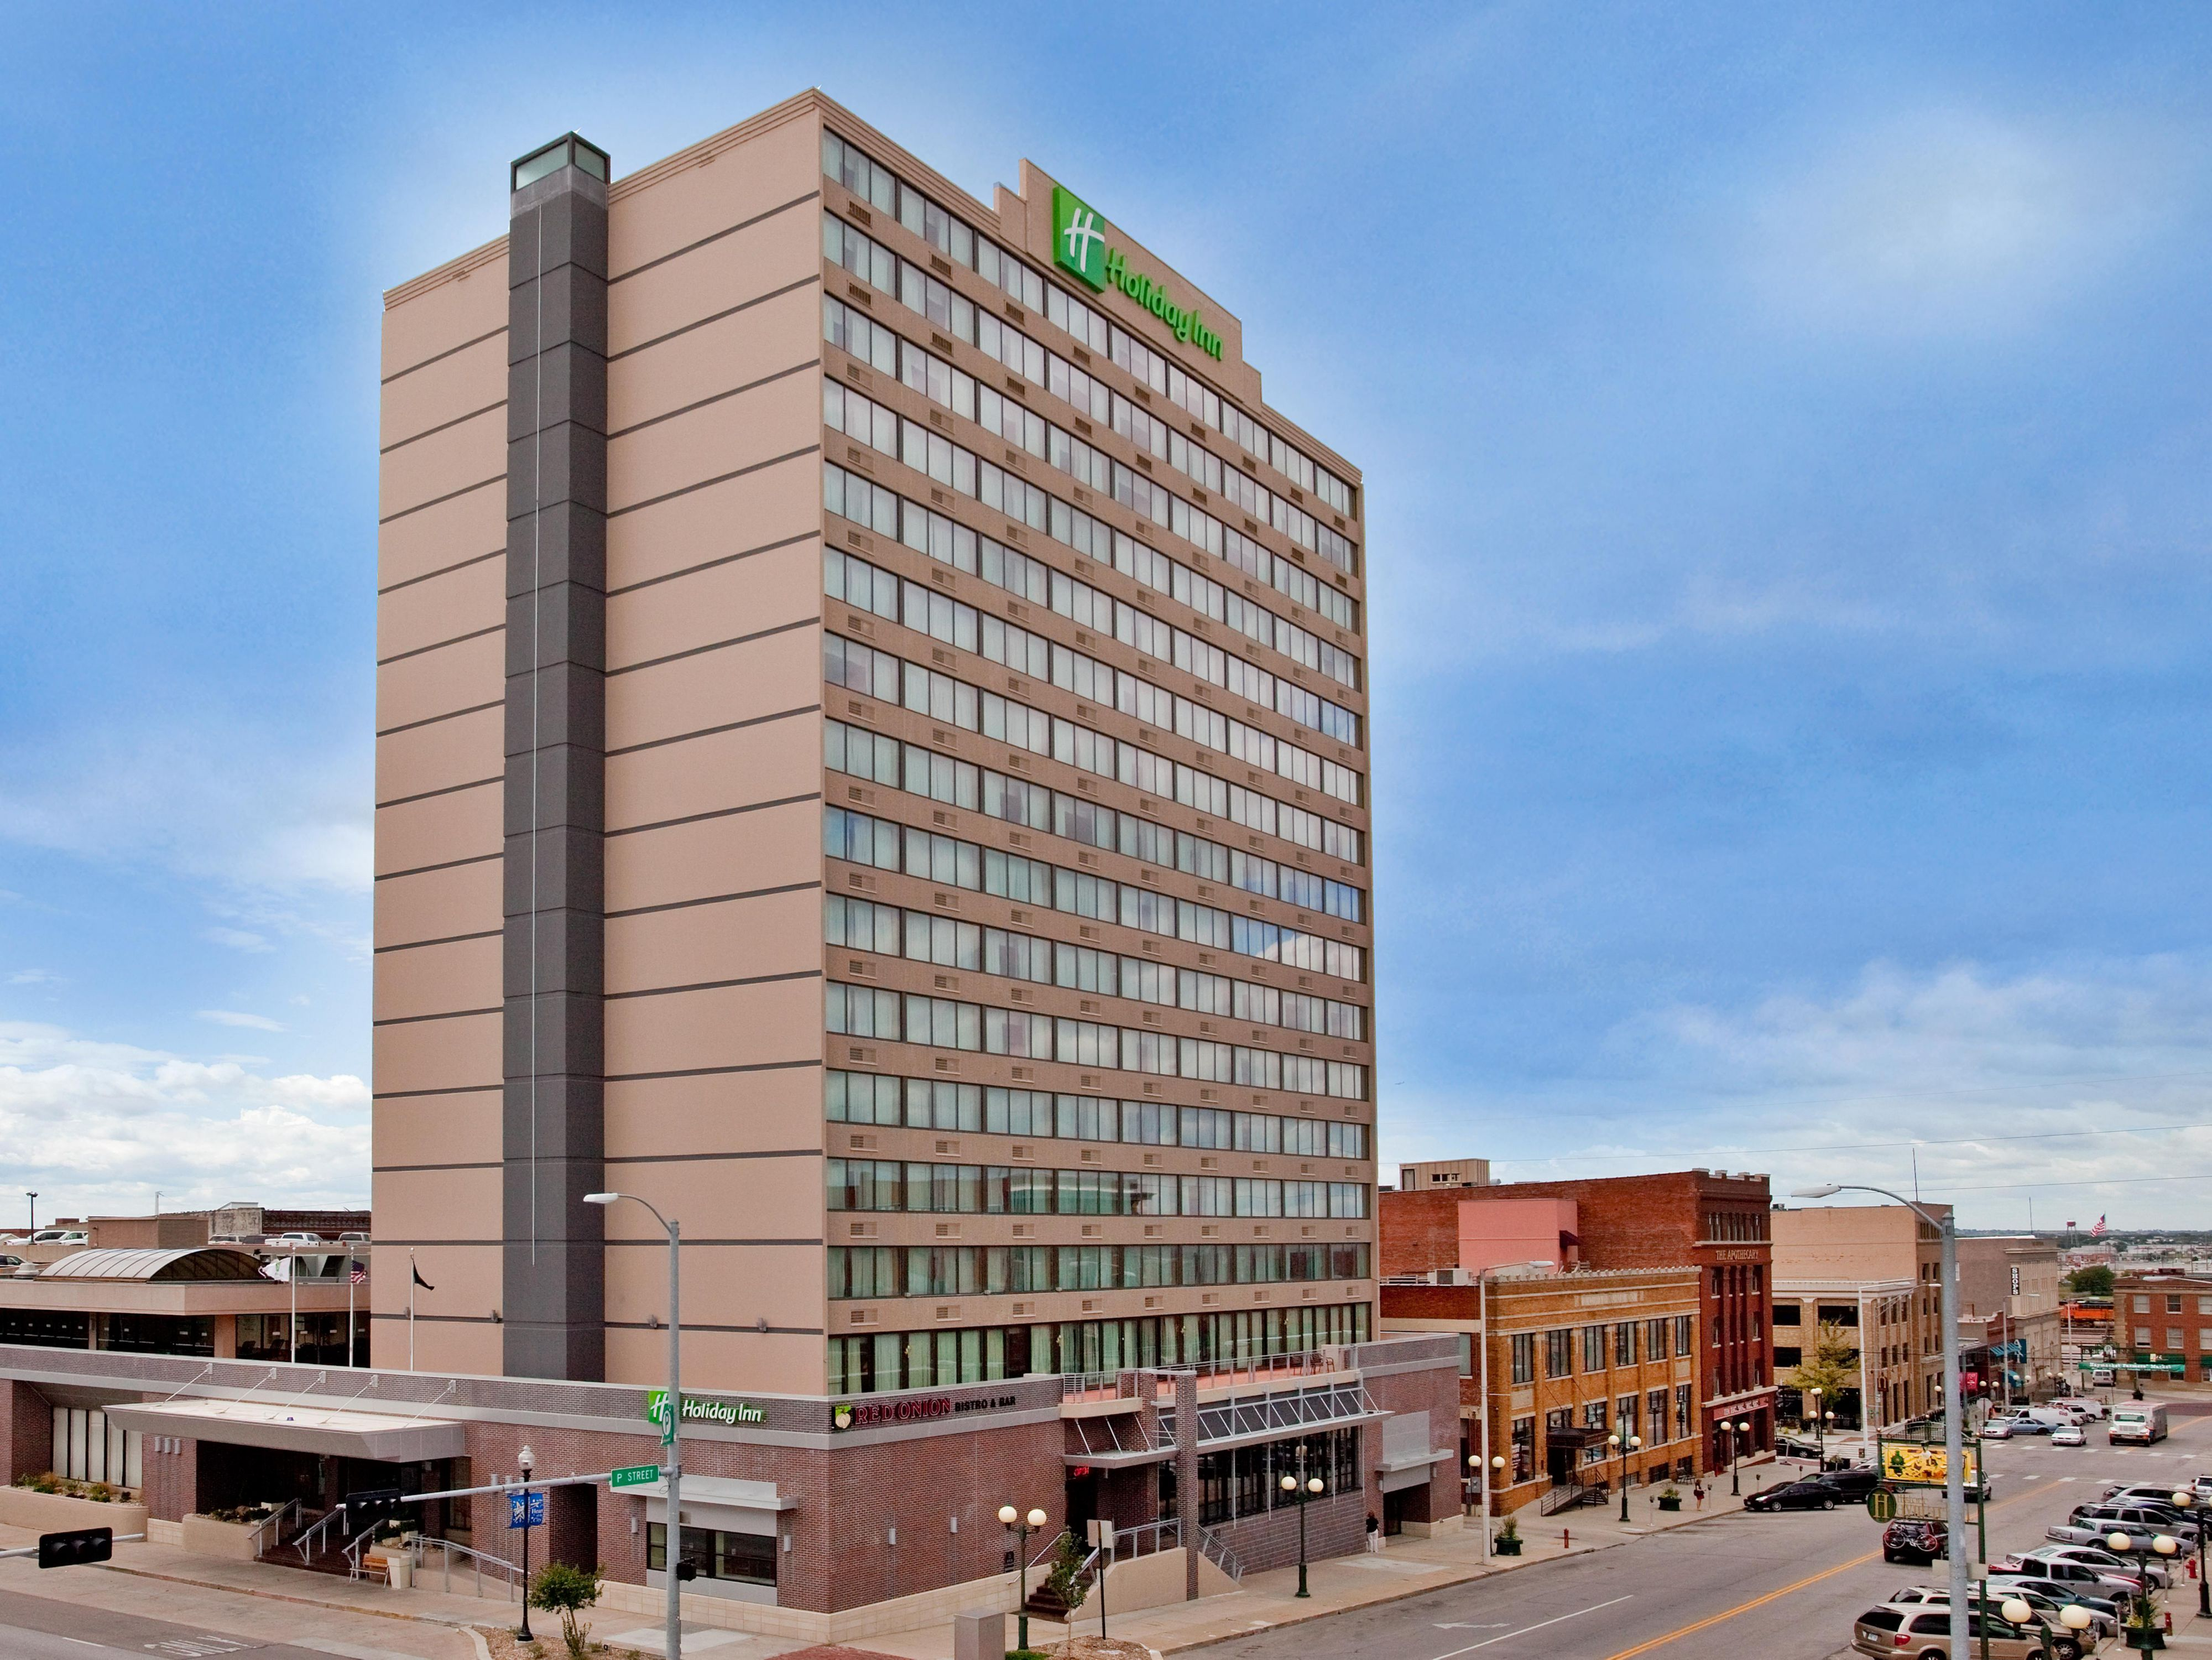 Welcome to the Holiday Inn Lincoln Downtown